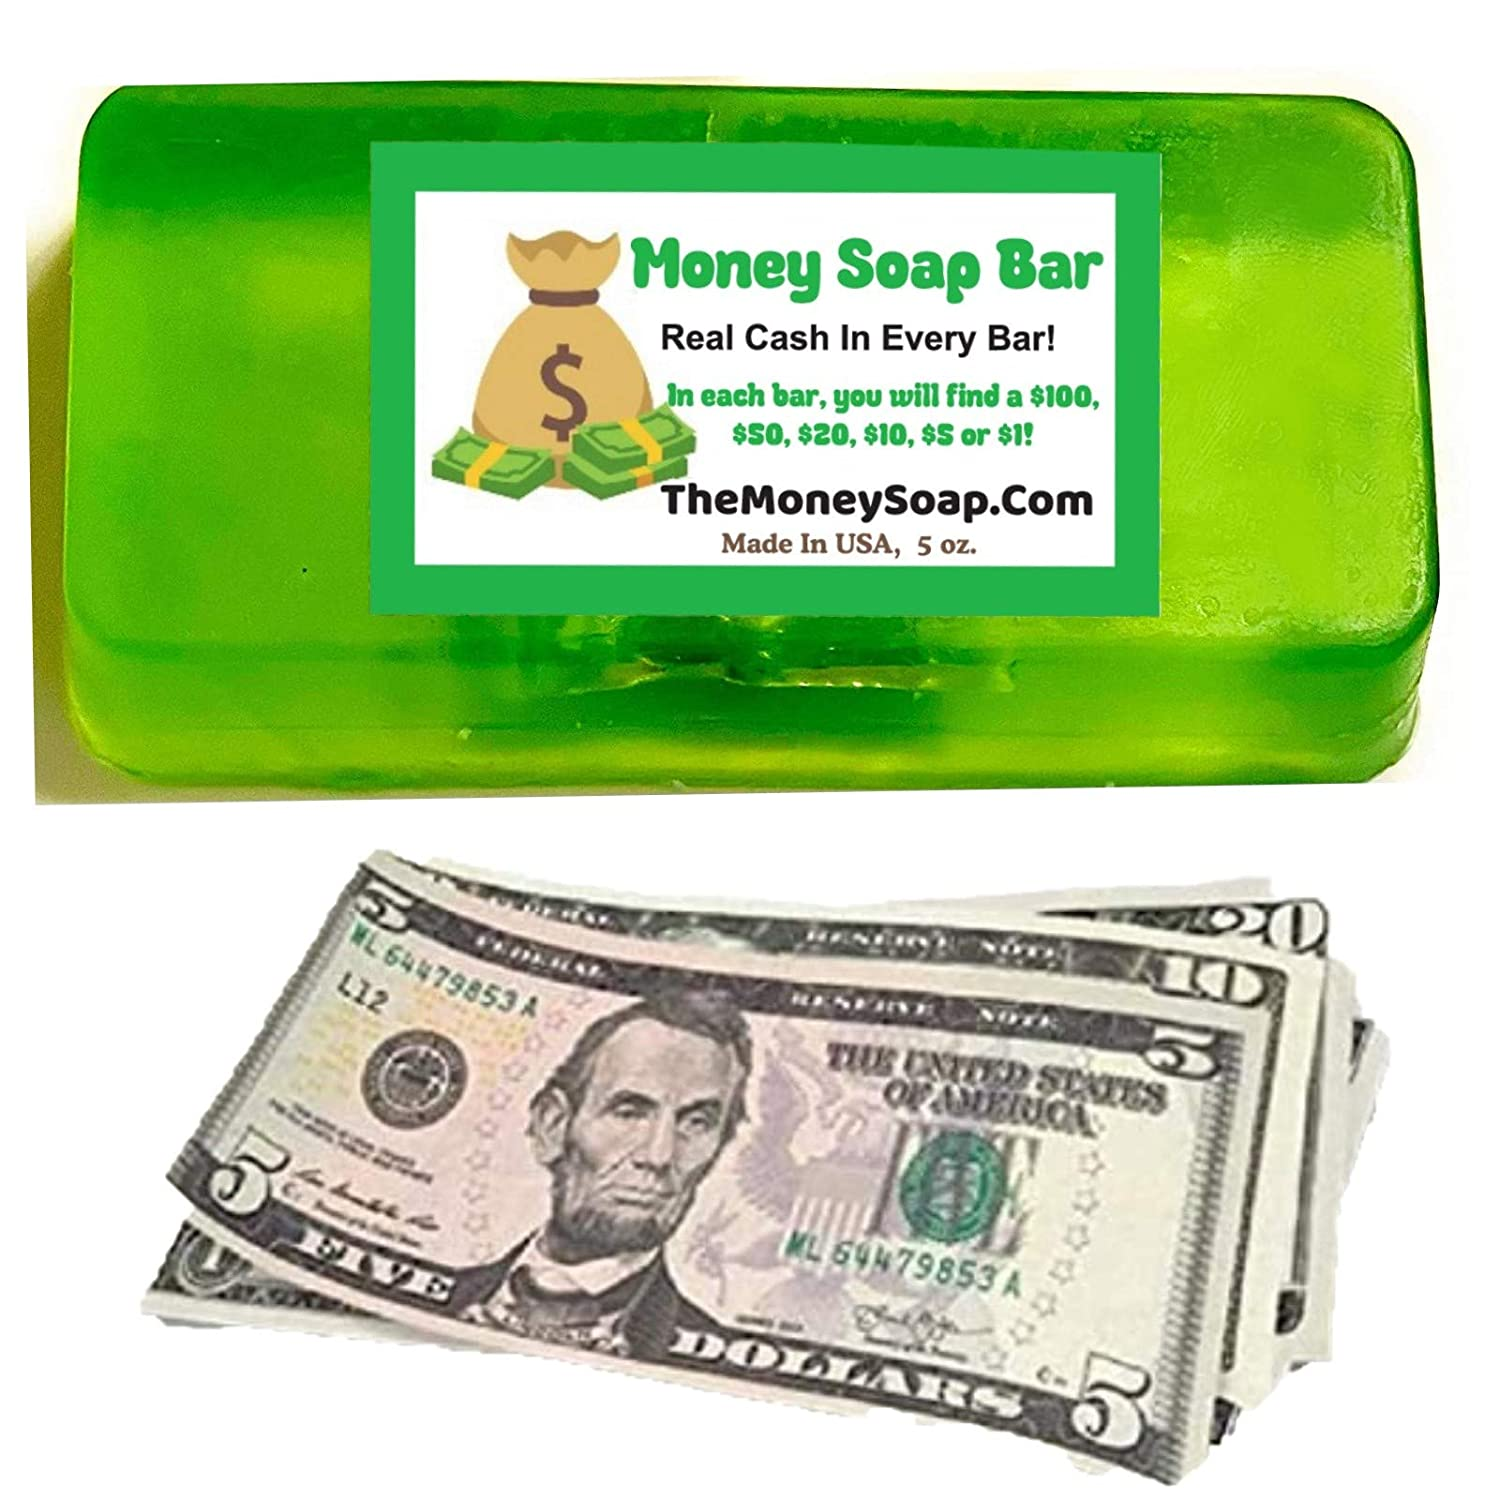 Money Soap Jackpot Real Cash in Every Bar Practical Joke Gag Gifts